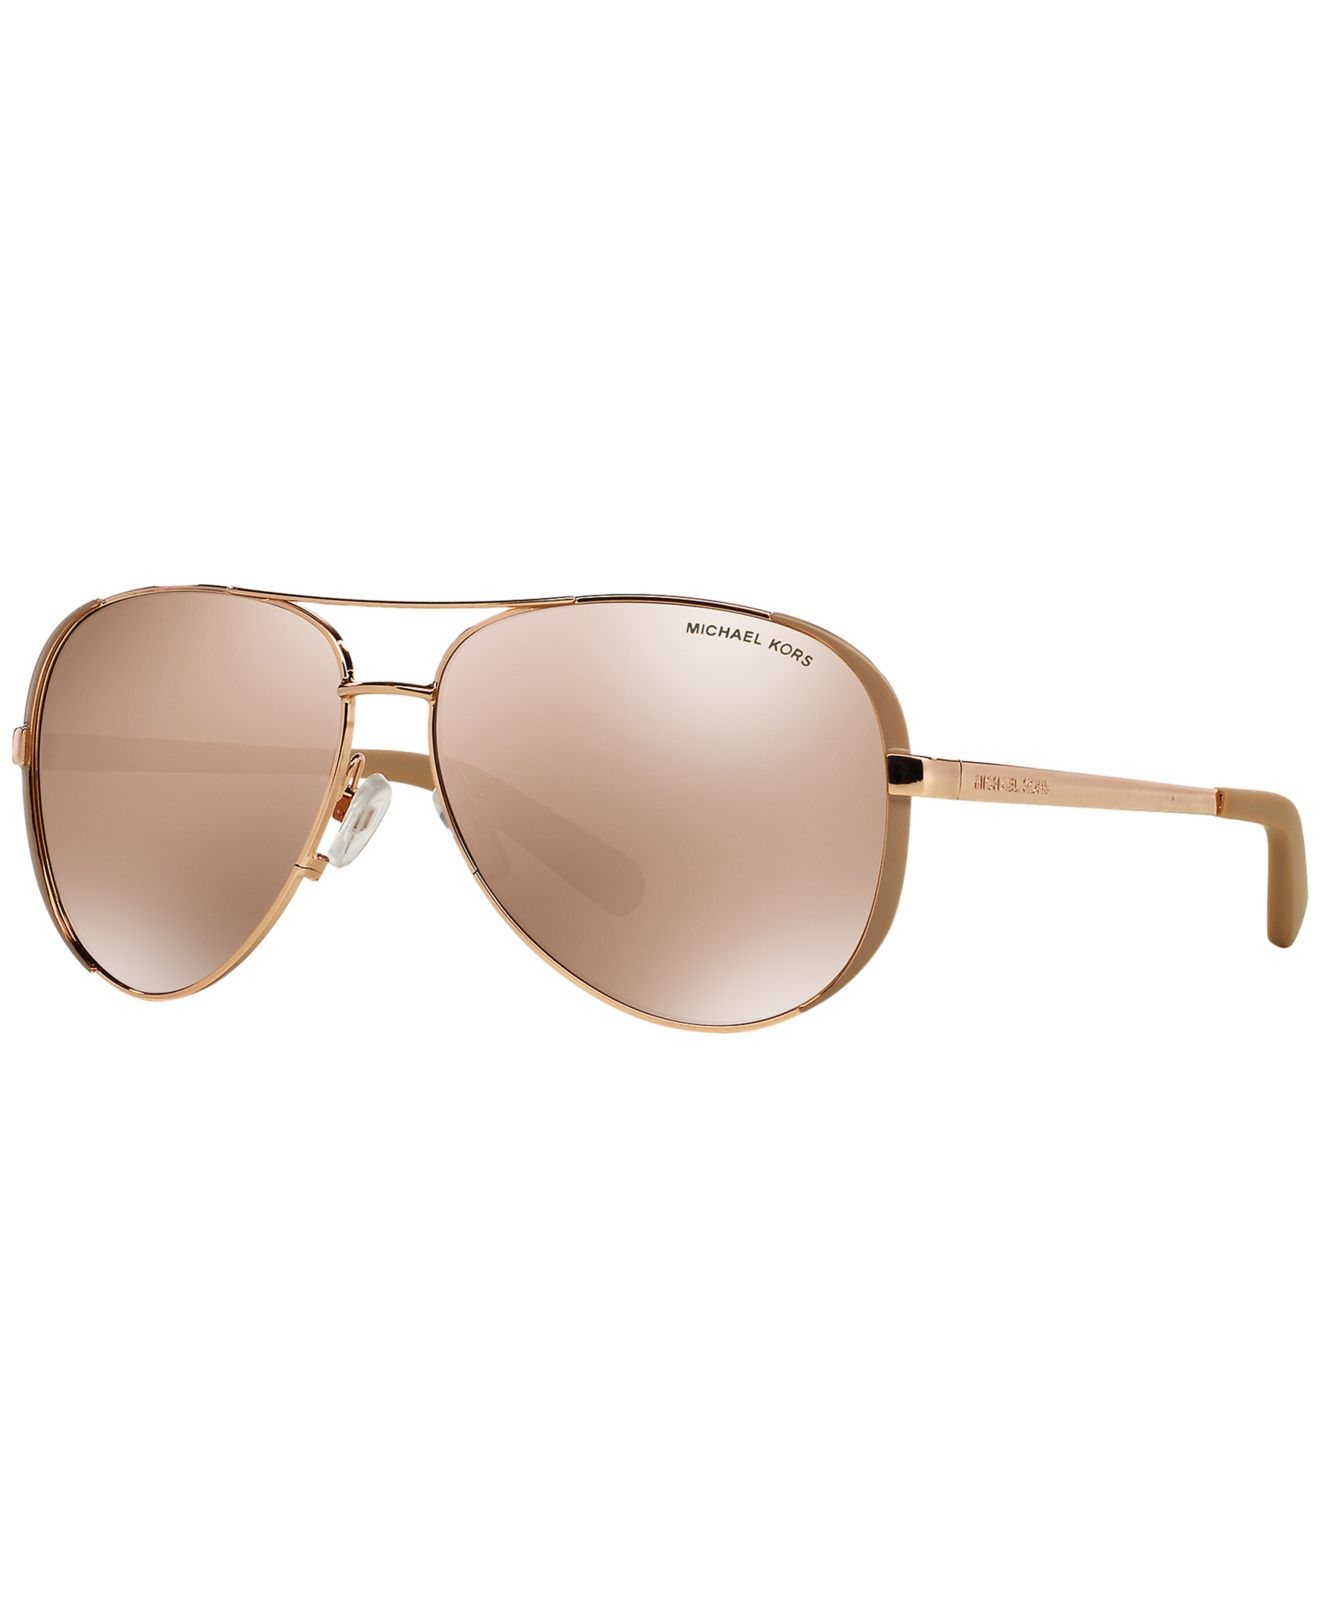 86fc6c90a9f8d Lyst - Michael Kors Mk5004 59 Chelsea in Pink